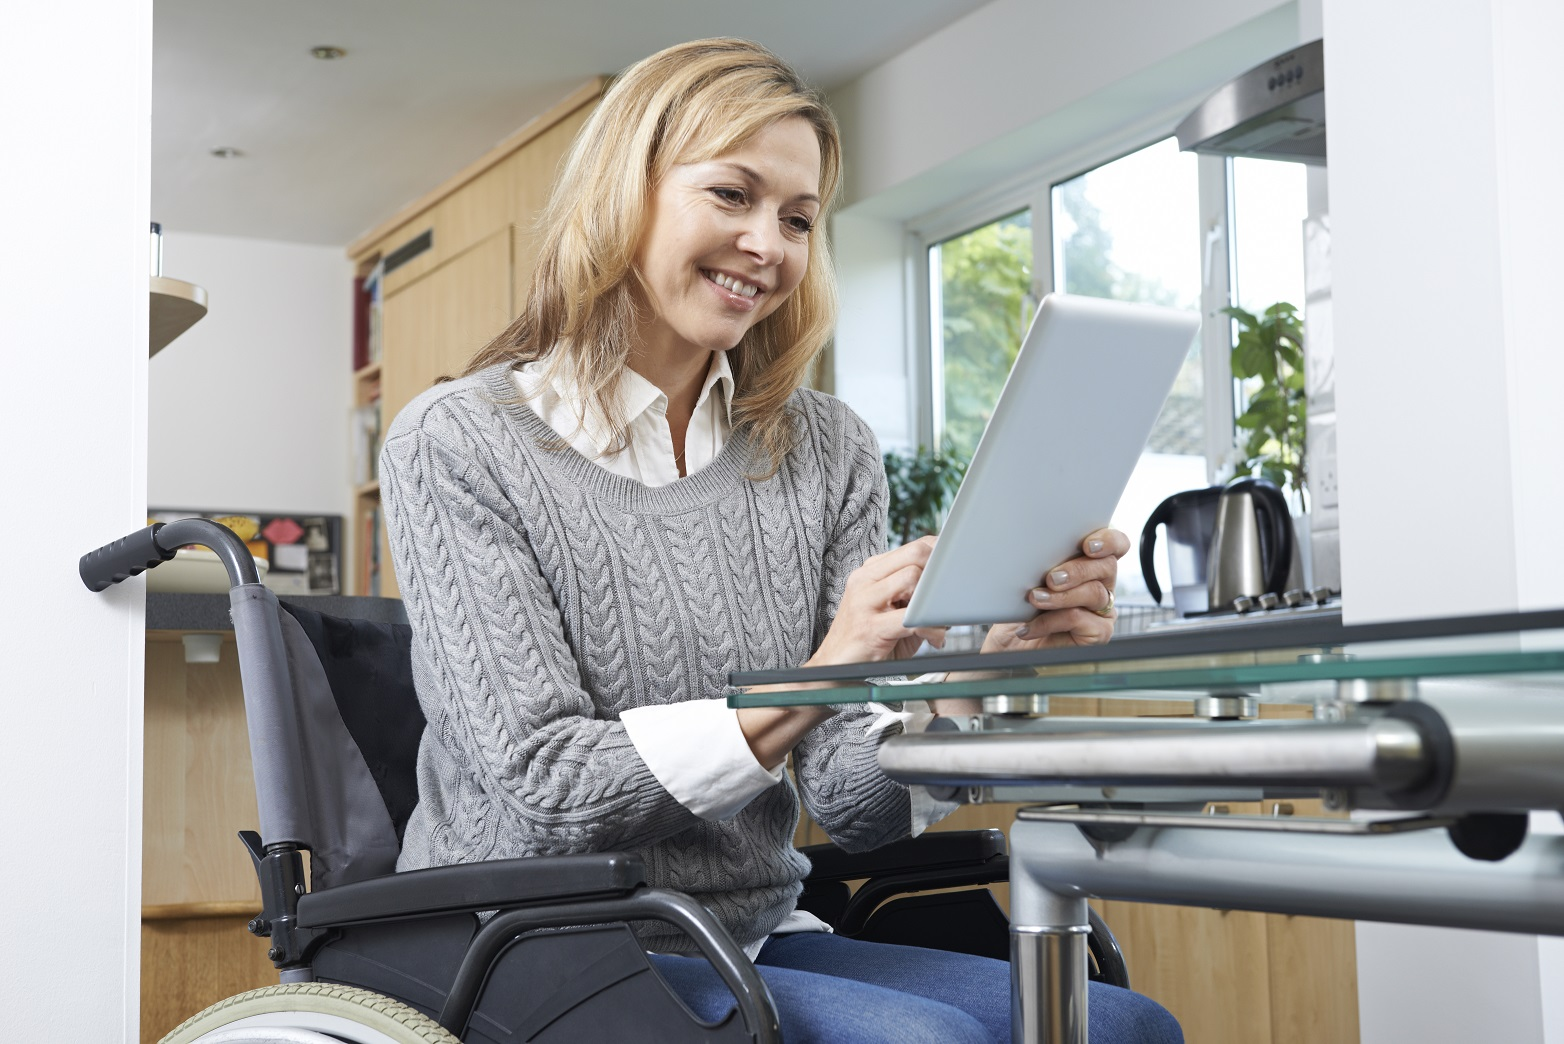 Woman At Home in Wheelchair